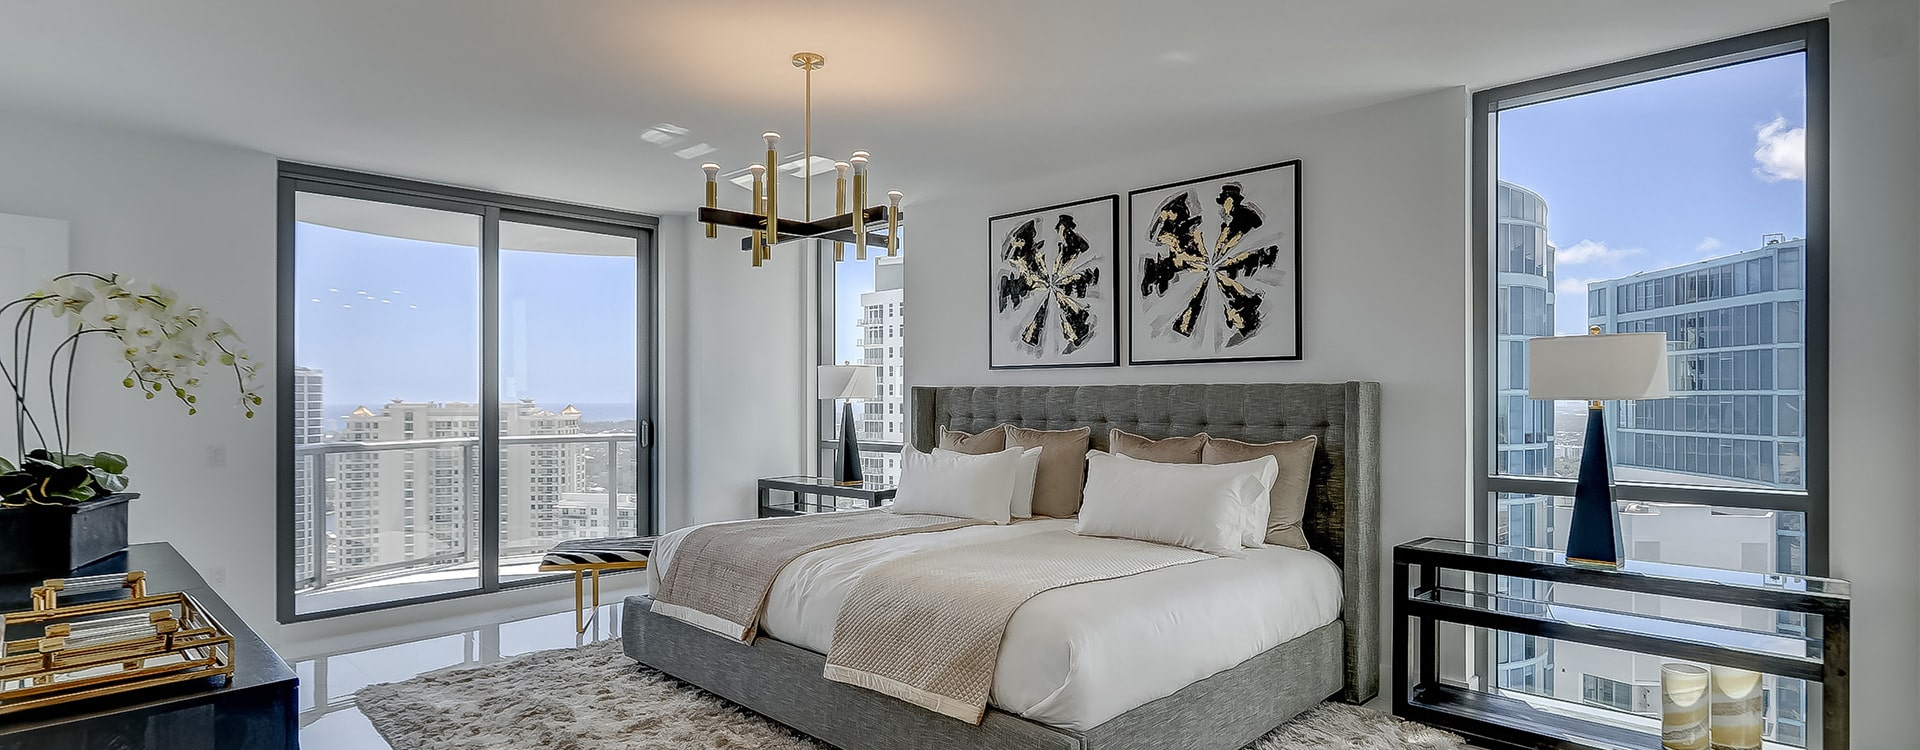 100 Las Olas Estate Bedroom with views of fort lauderdale